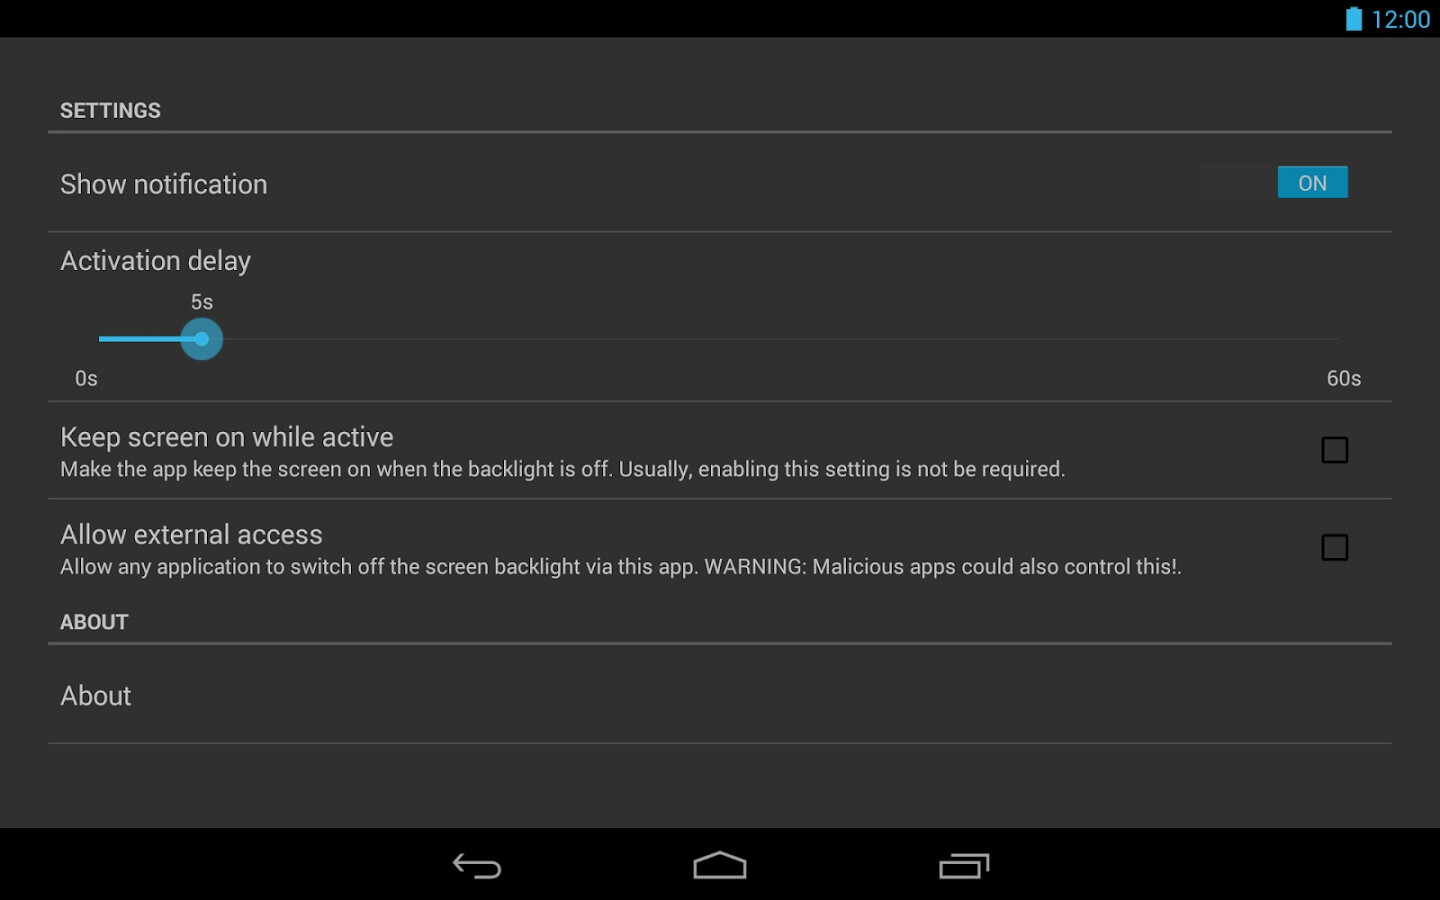 This Android app turns off the display's backlight without ...